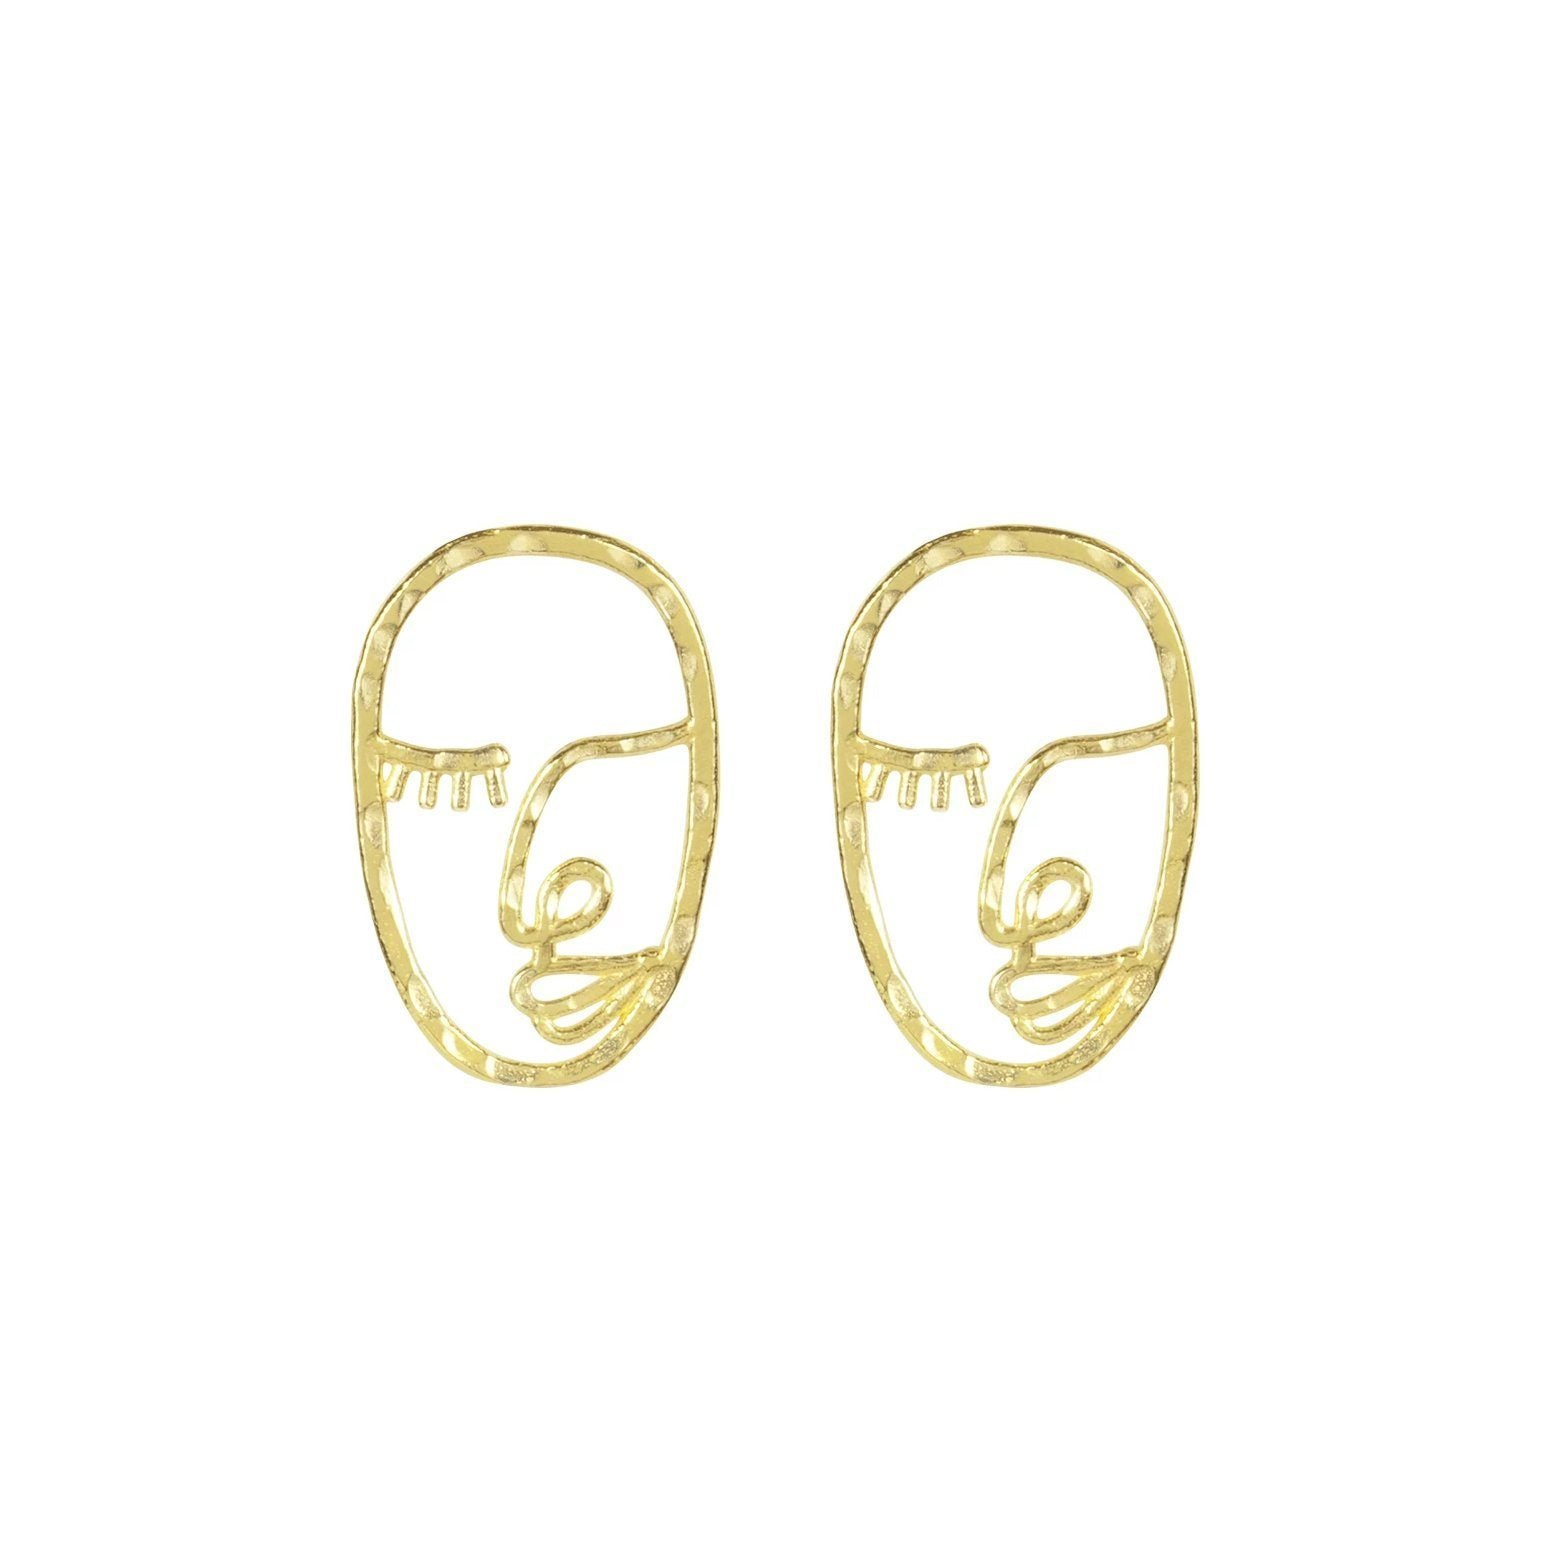 The Artist Face Earring inspired by Matisse and Picasso. Handmade in California by Katie Dean Jewelry.